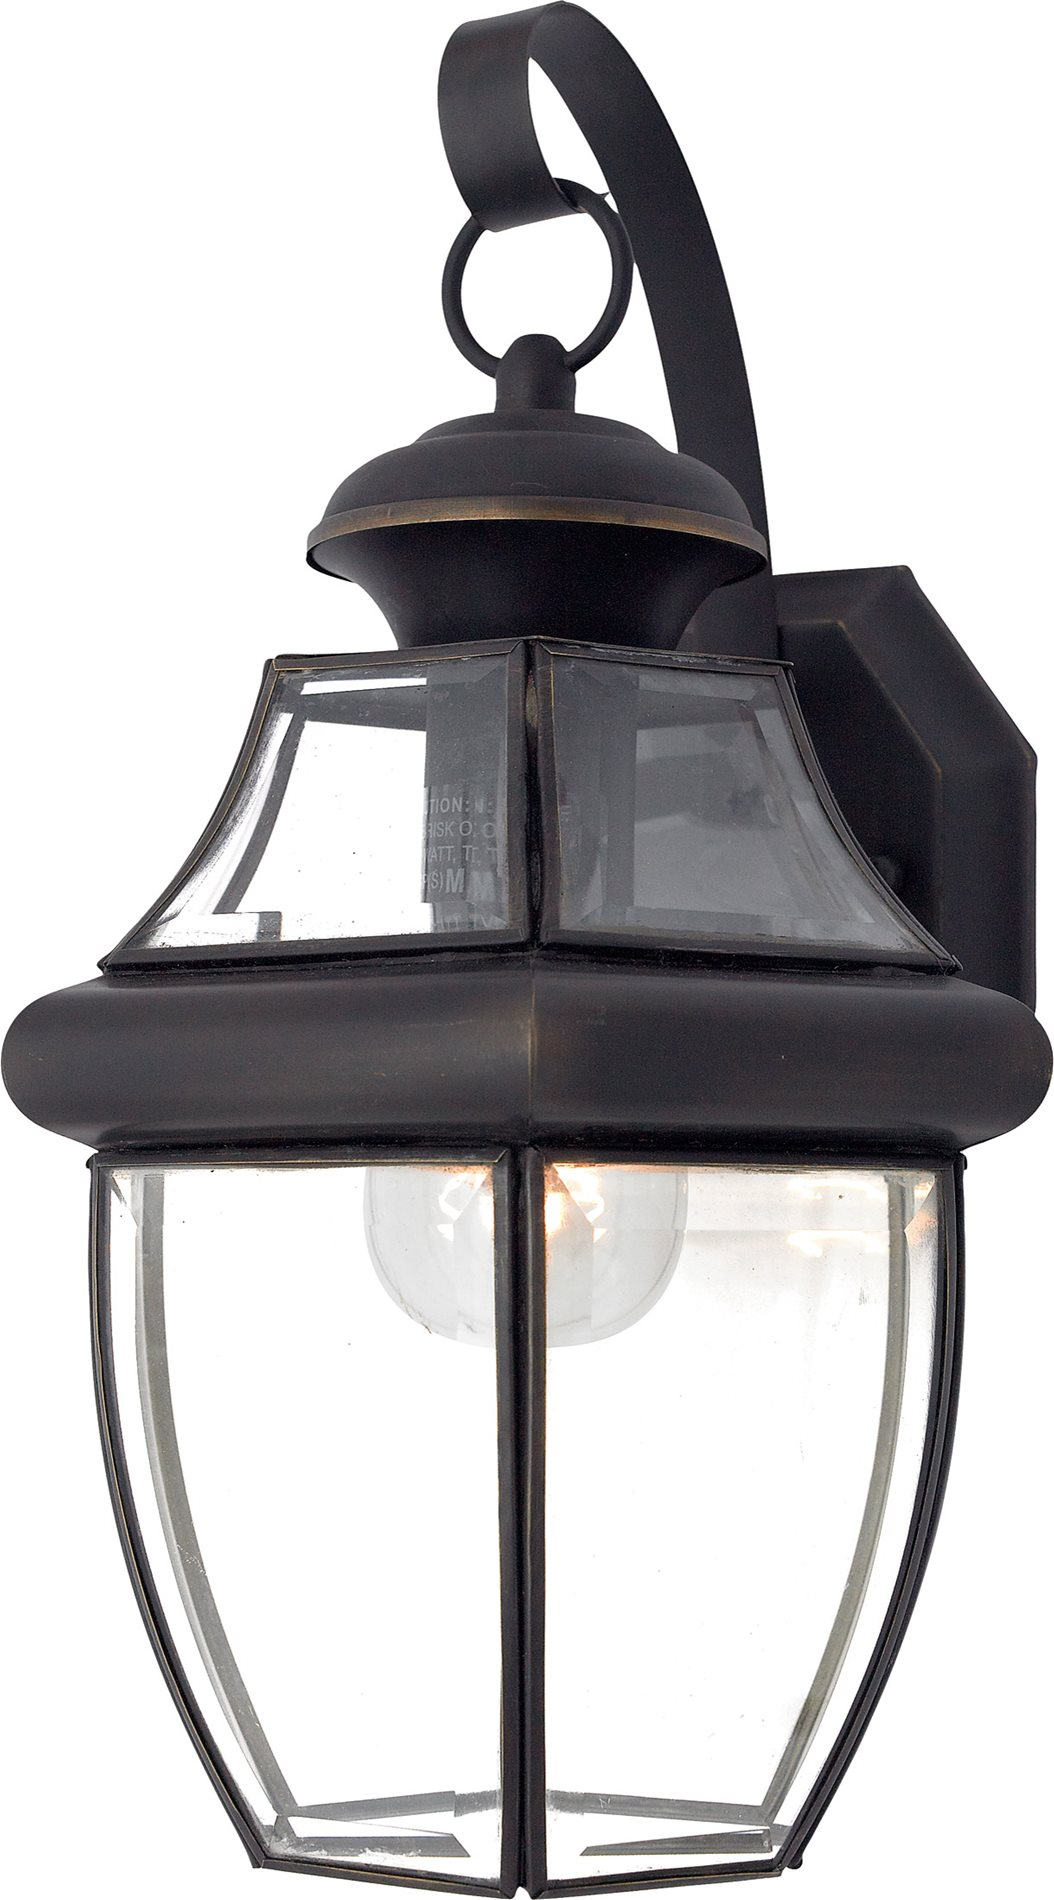 Quoizel ny8316z newbury traditional outdoor wall sconce qz for Outdoor porch light fixtures